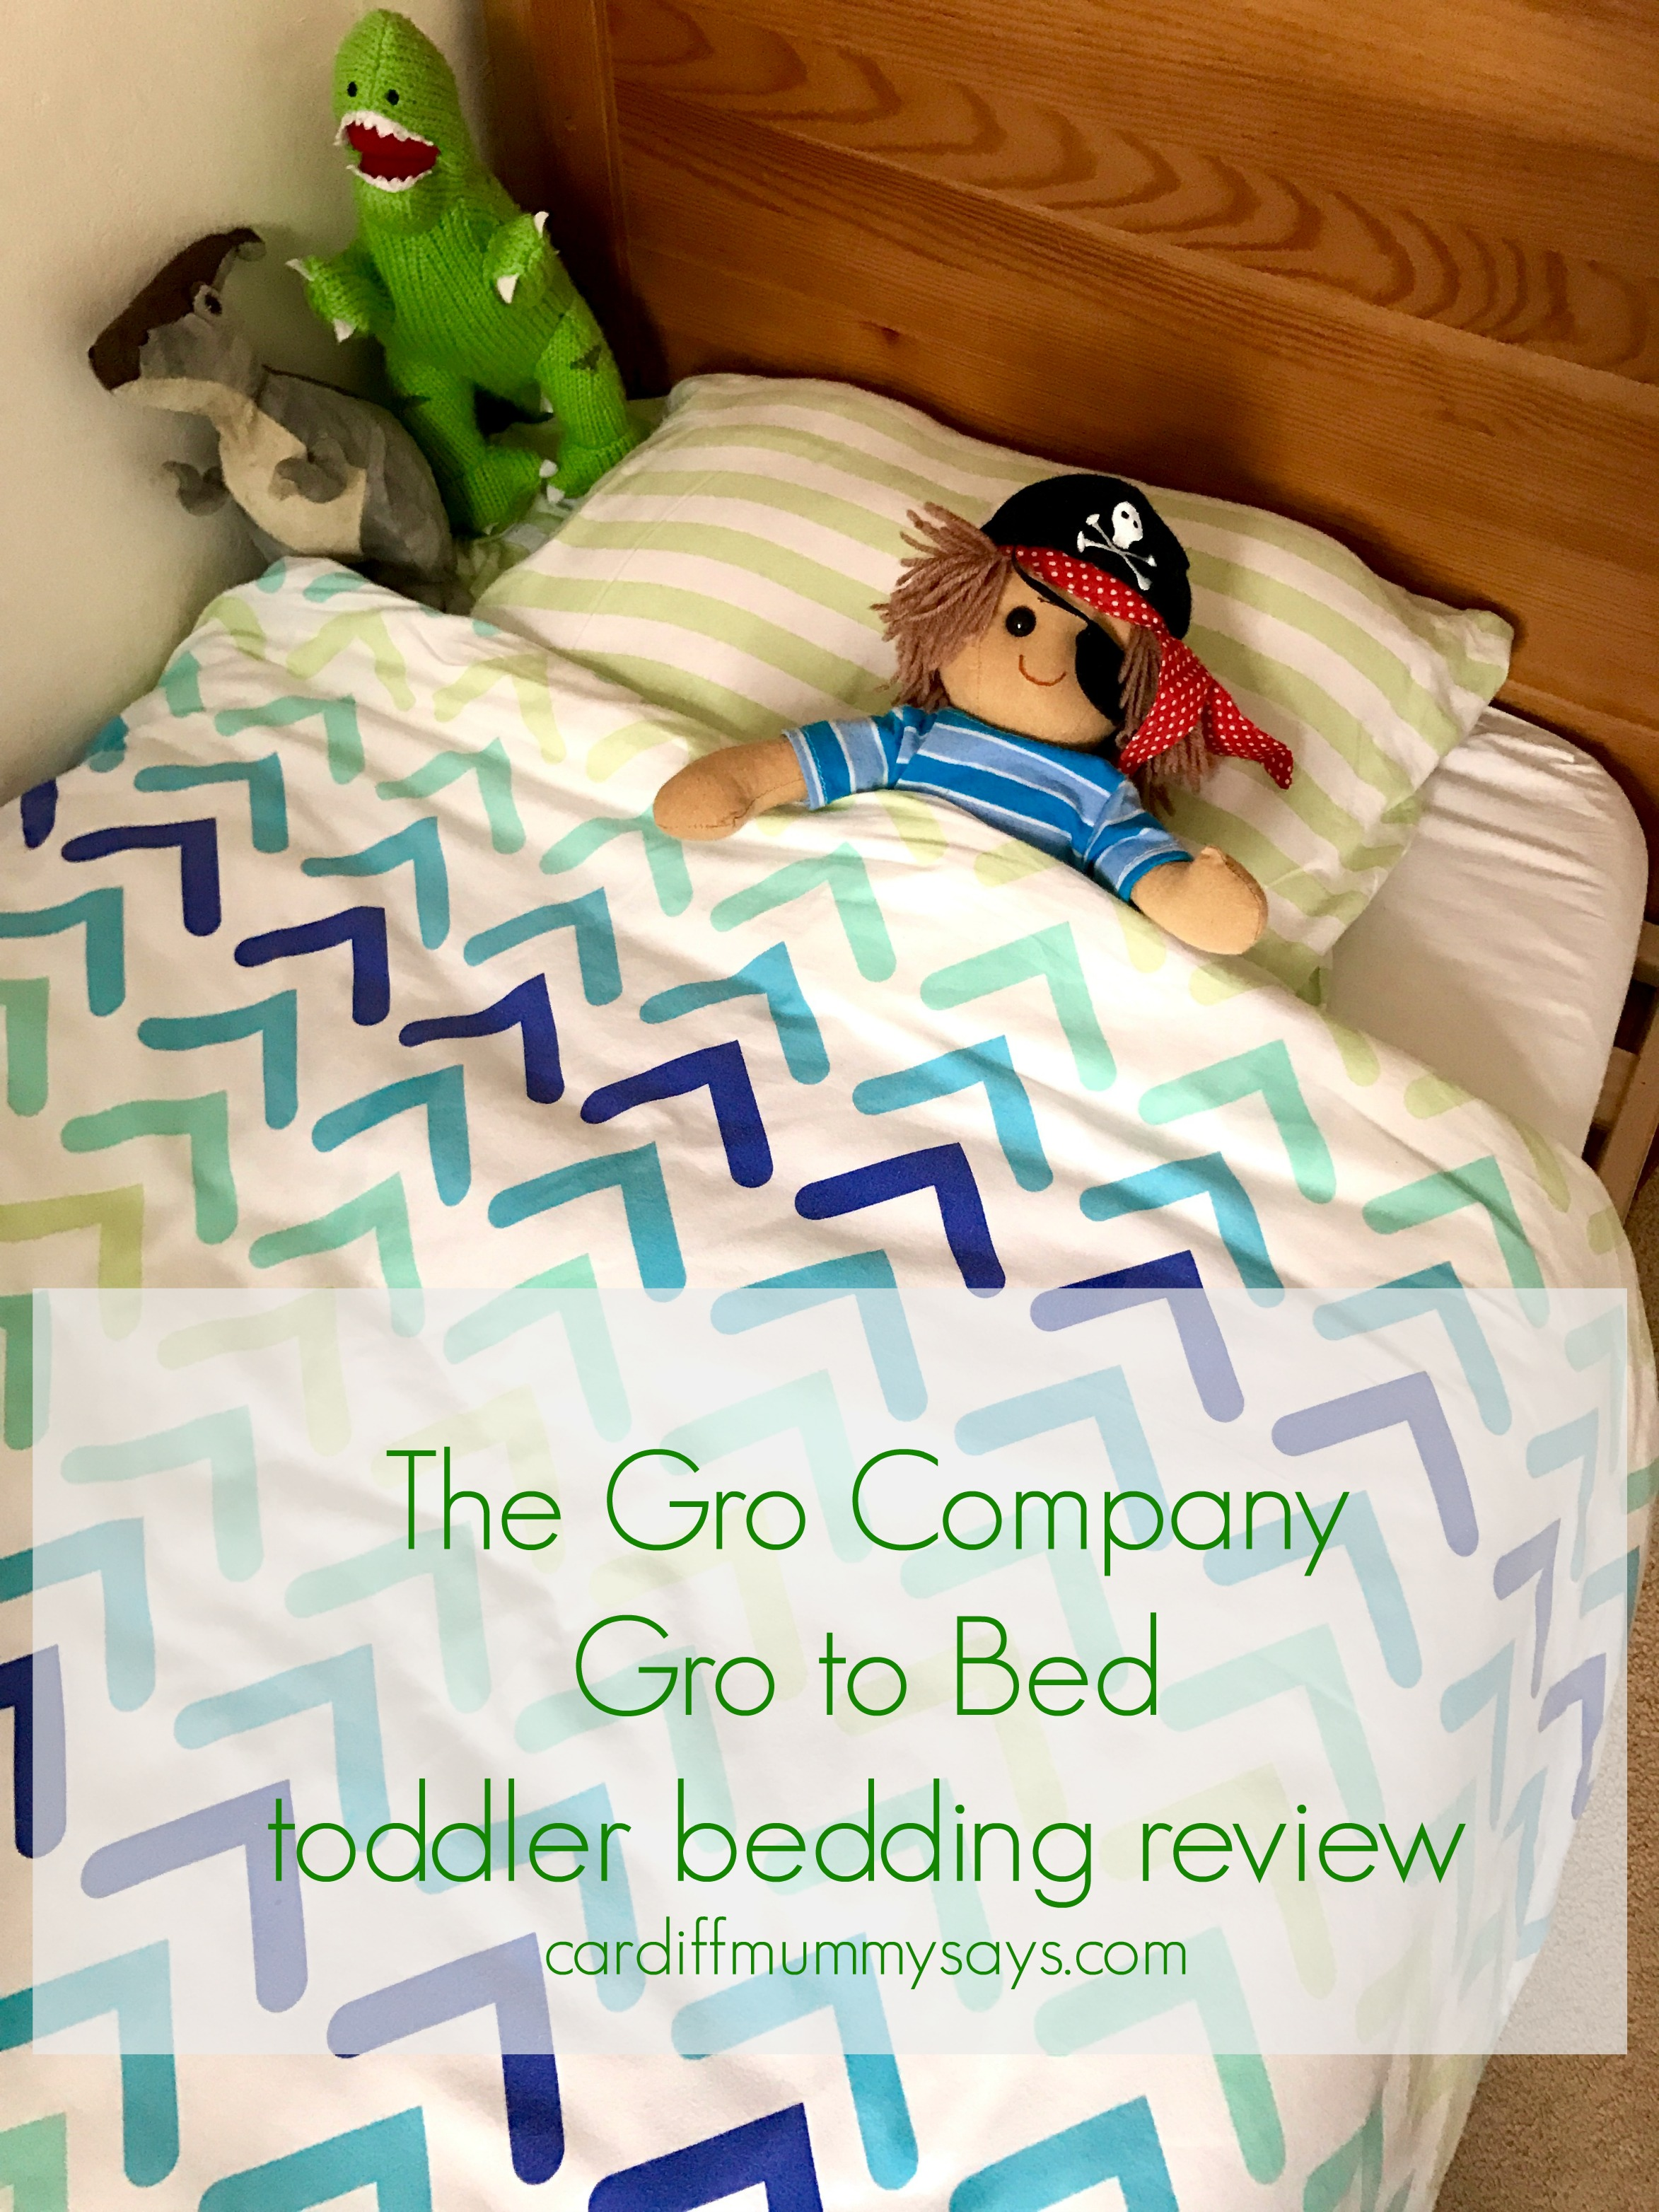 Gro to bed toddler bedding review